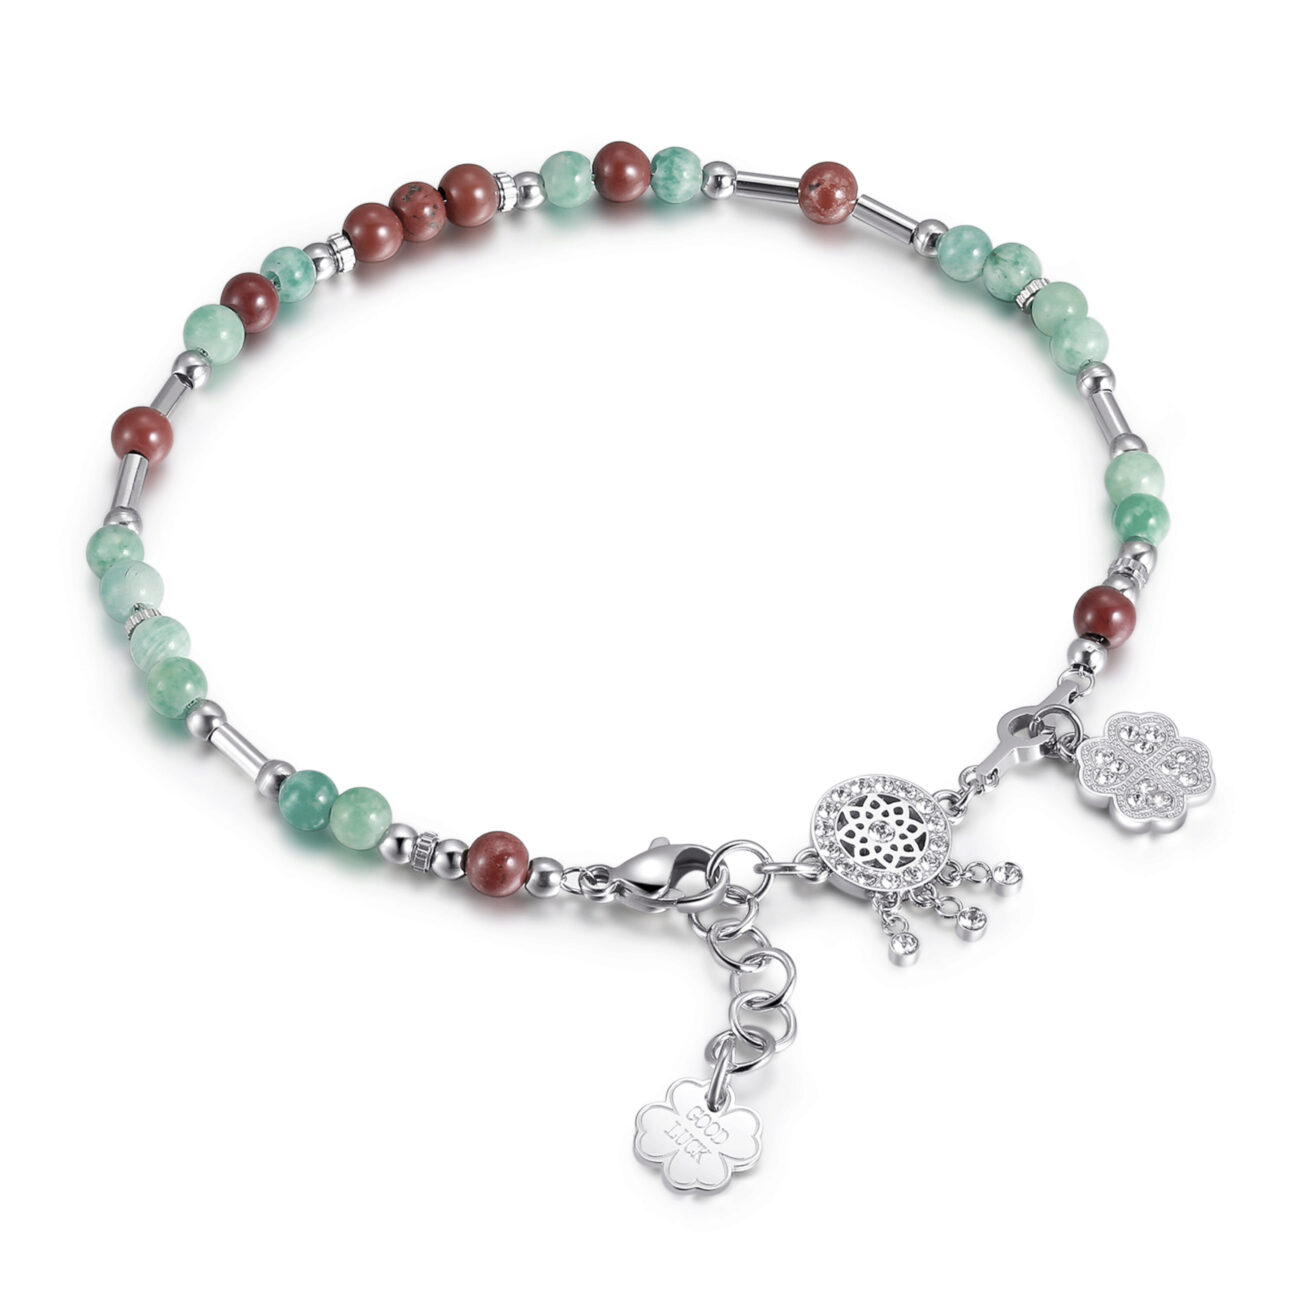 316L stainless steel anklet, amazonite, red jasper with dreamcatcher and four-leaf clover charm with Swarovski®crystals.